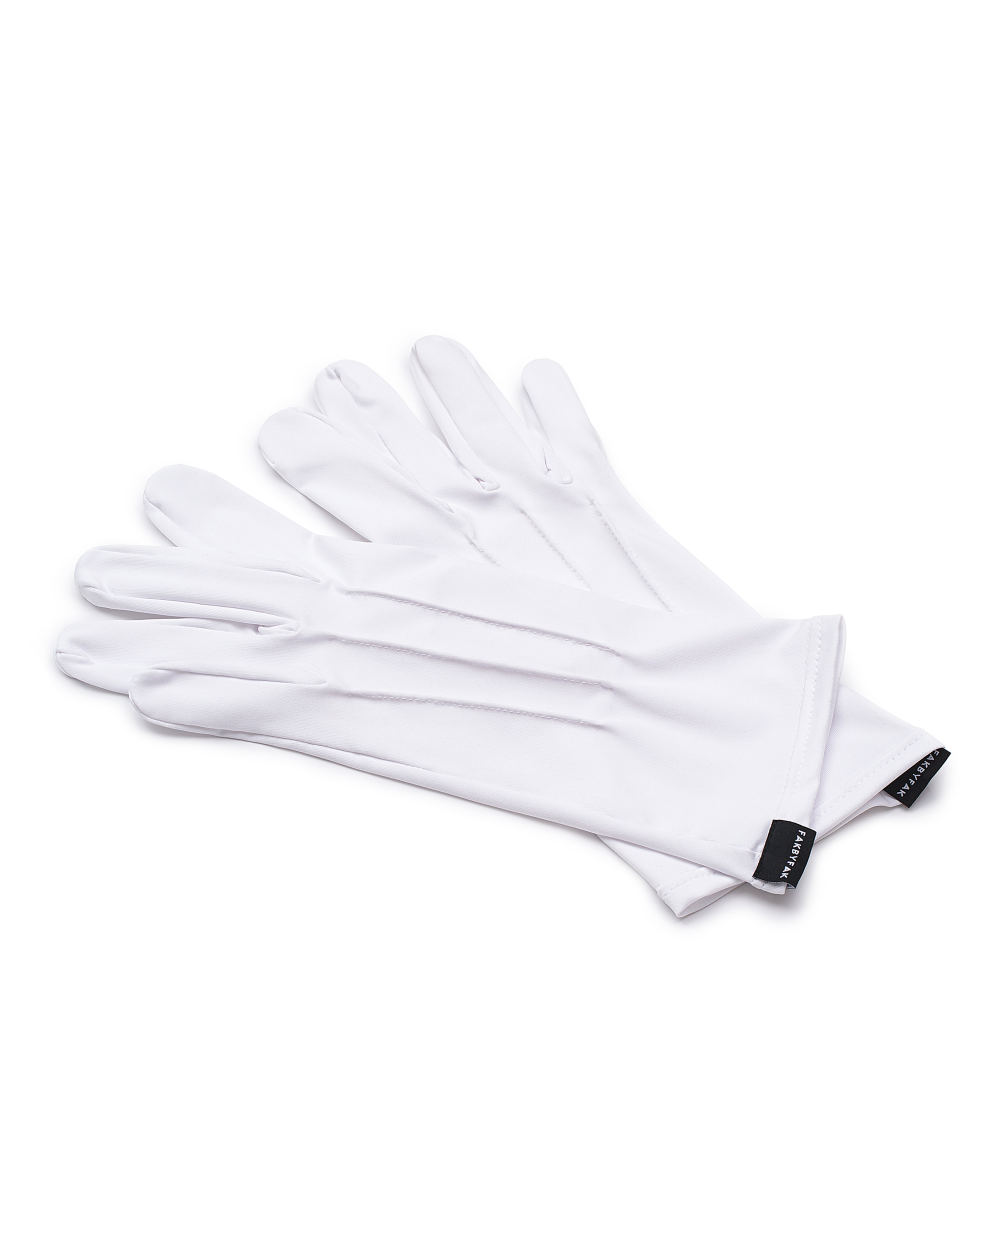 The Vega. Fine Protective Antibacterial (ATB-UV+) Unisex Gloves. White